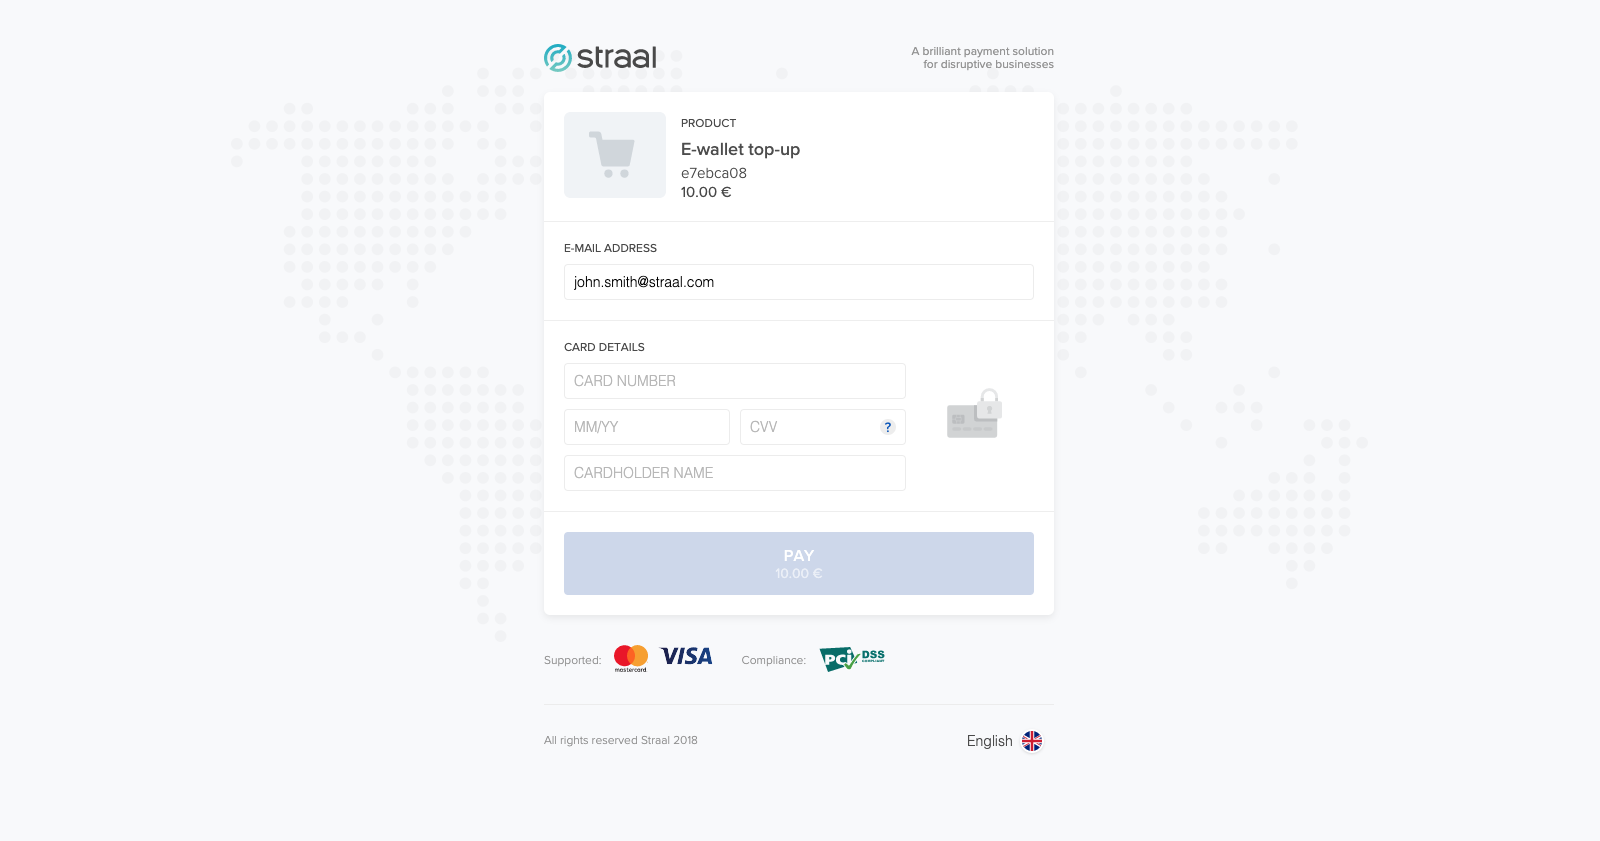 Straal-blog checkout-page